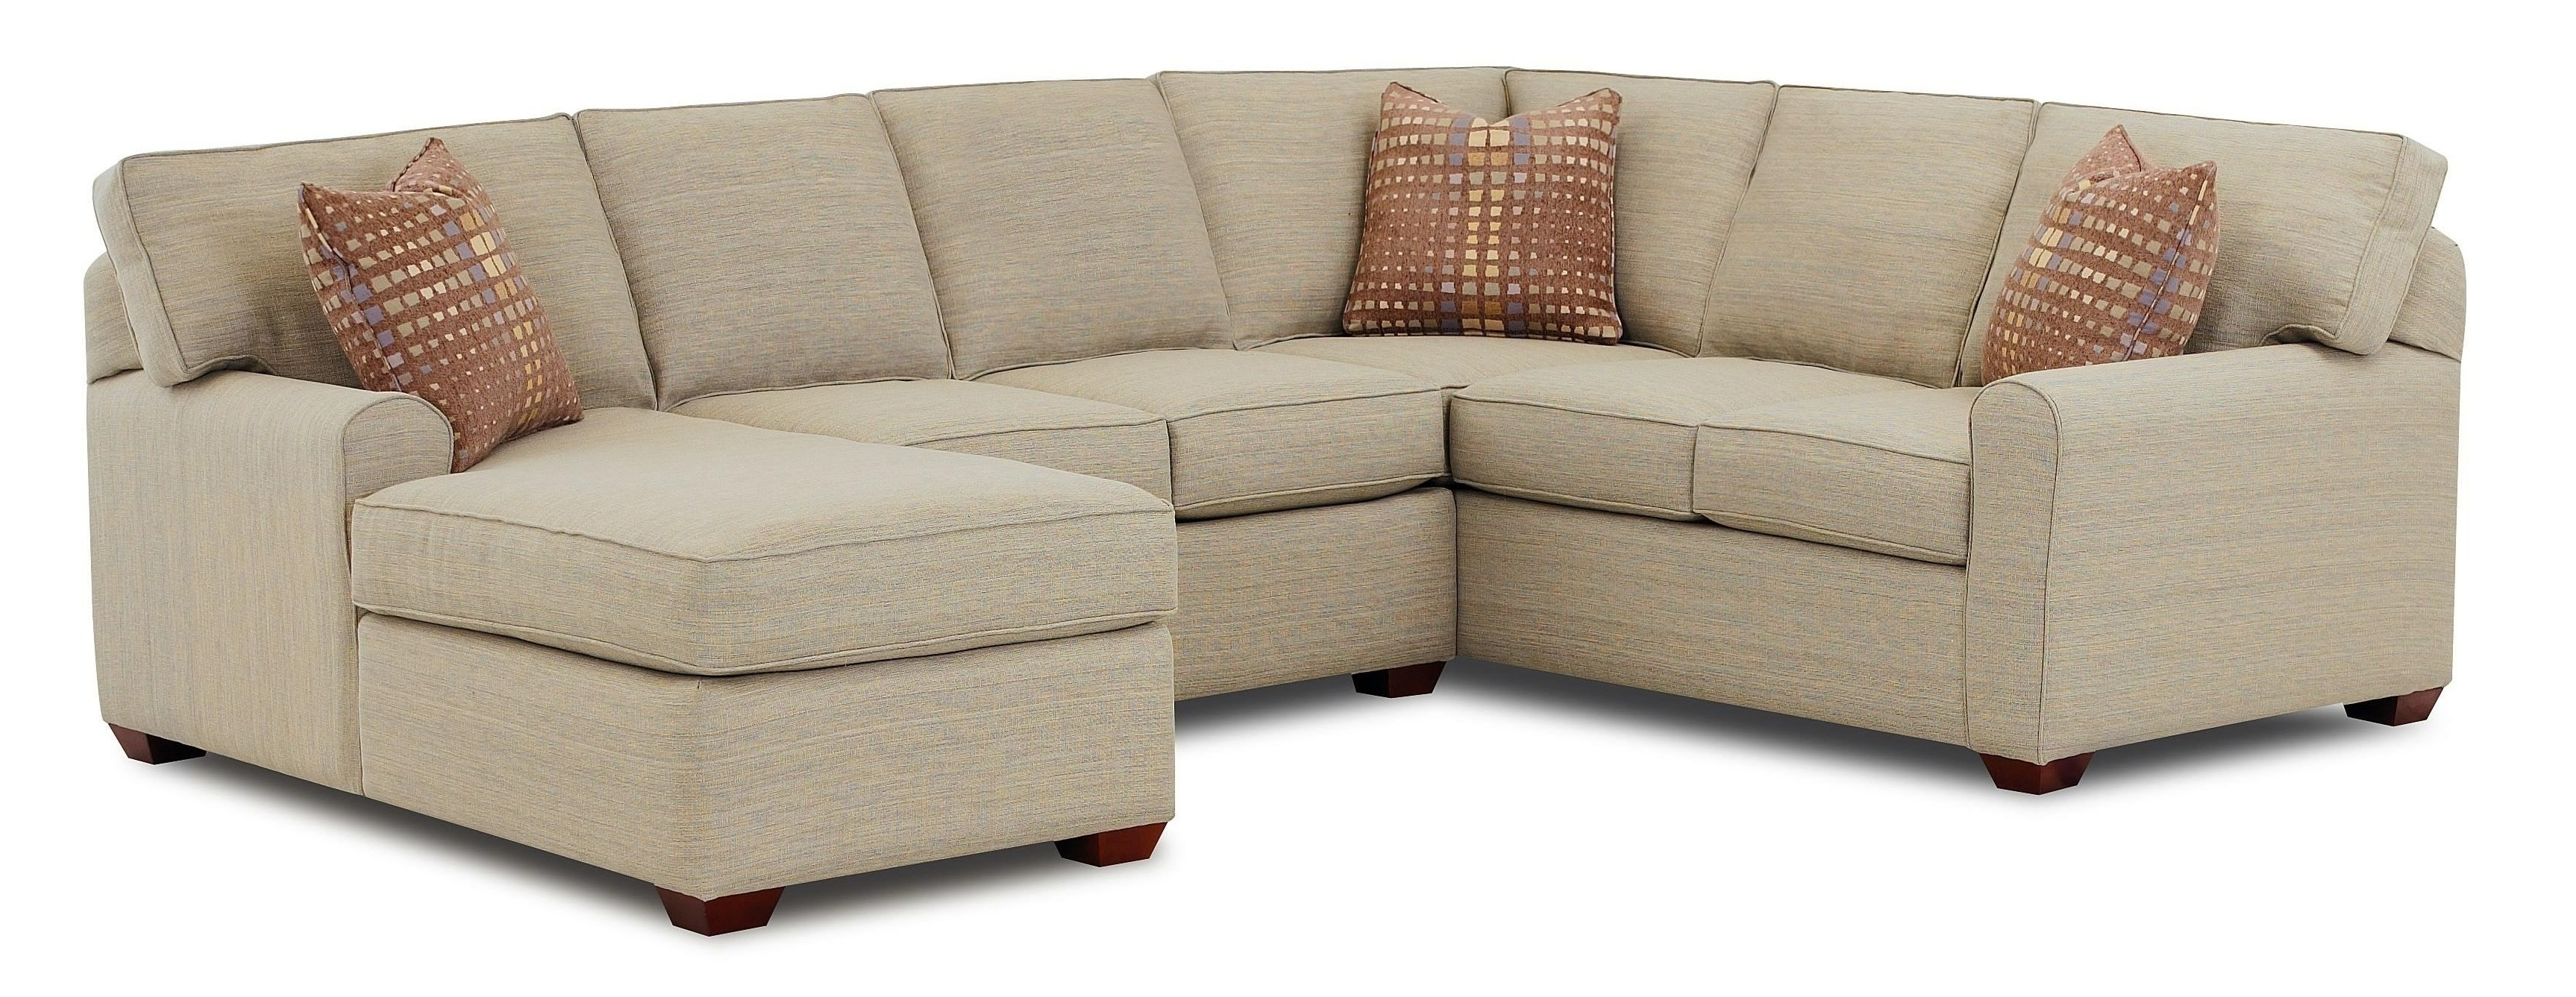 Widely Used Sectional Sofa Design: Small Sectional Sofa With Chaise Lounge Inside Small Sectional Sofas With Chaise Lounge (View 15 of 15)